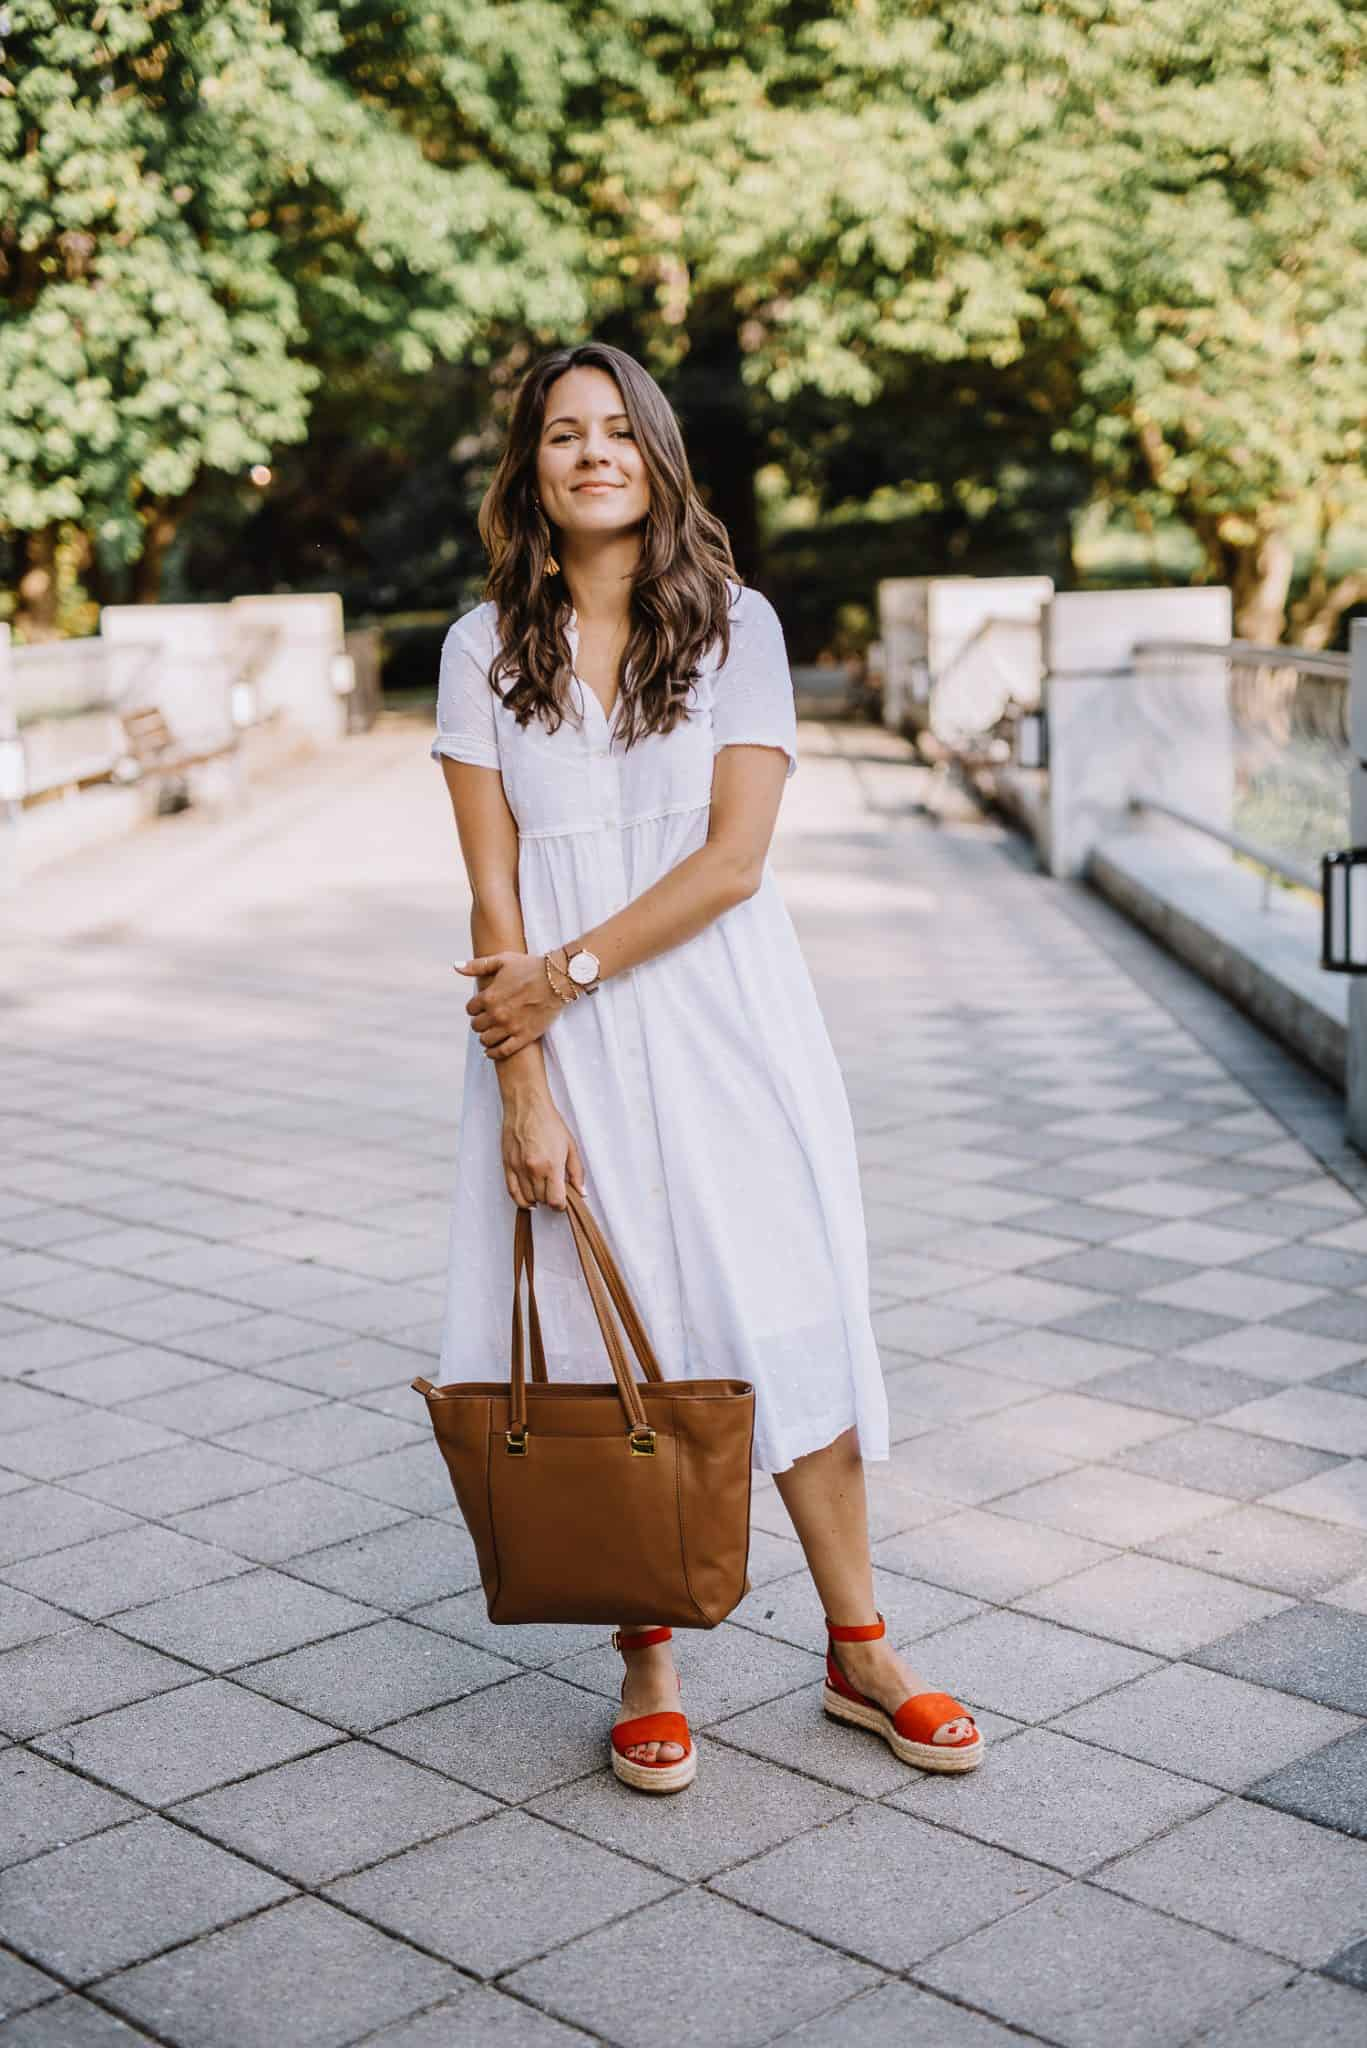 red espadrilles, white sundress, summer outfit ideas, how to dress up a white dress - My Style Vita-1